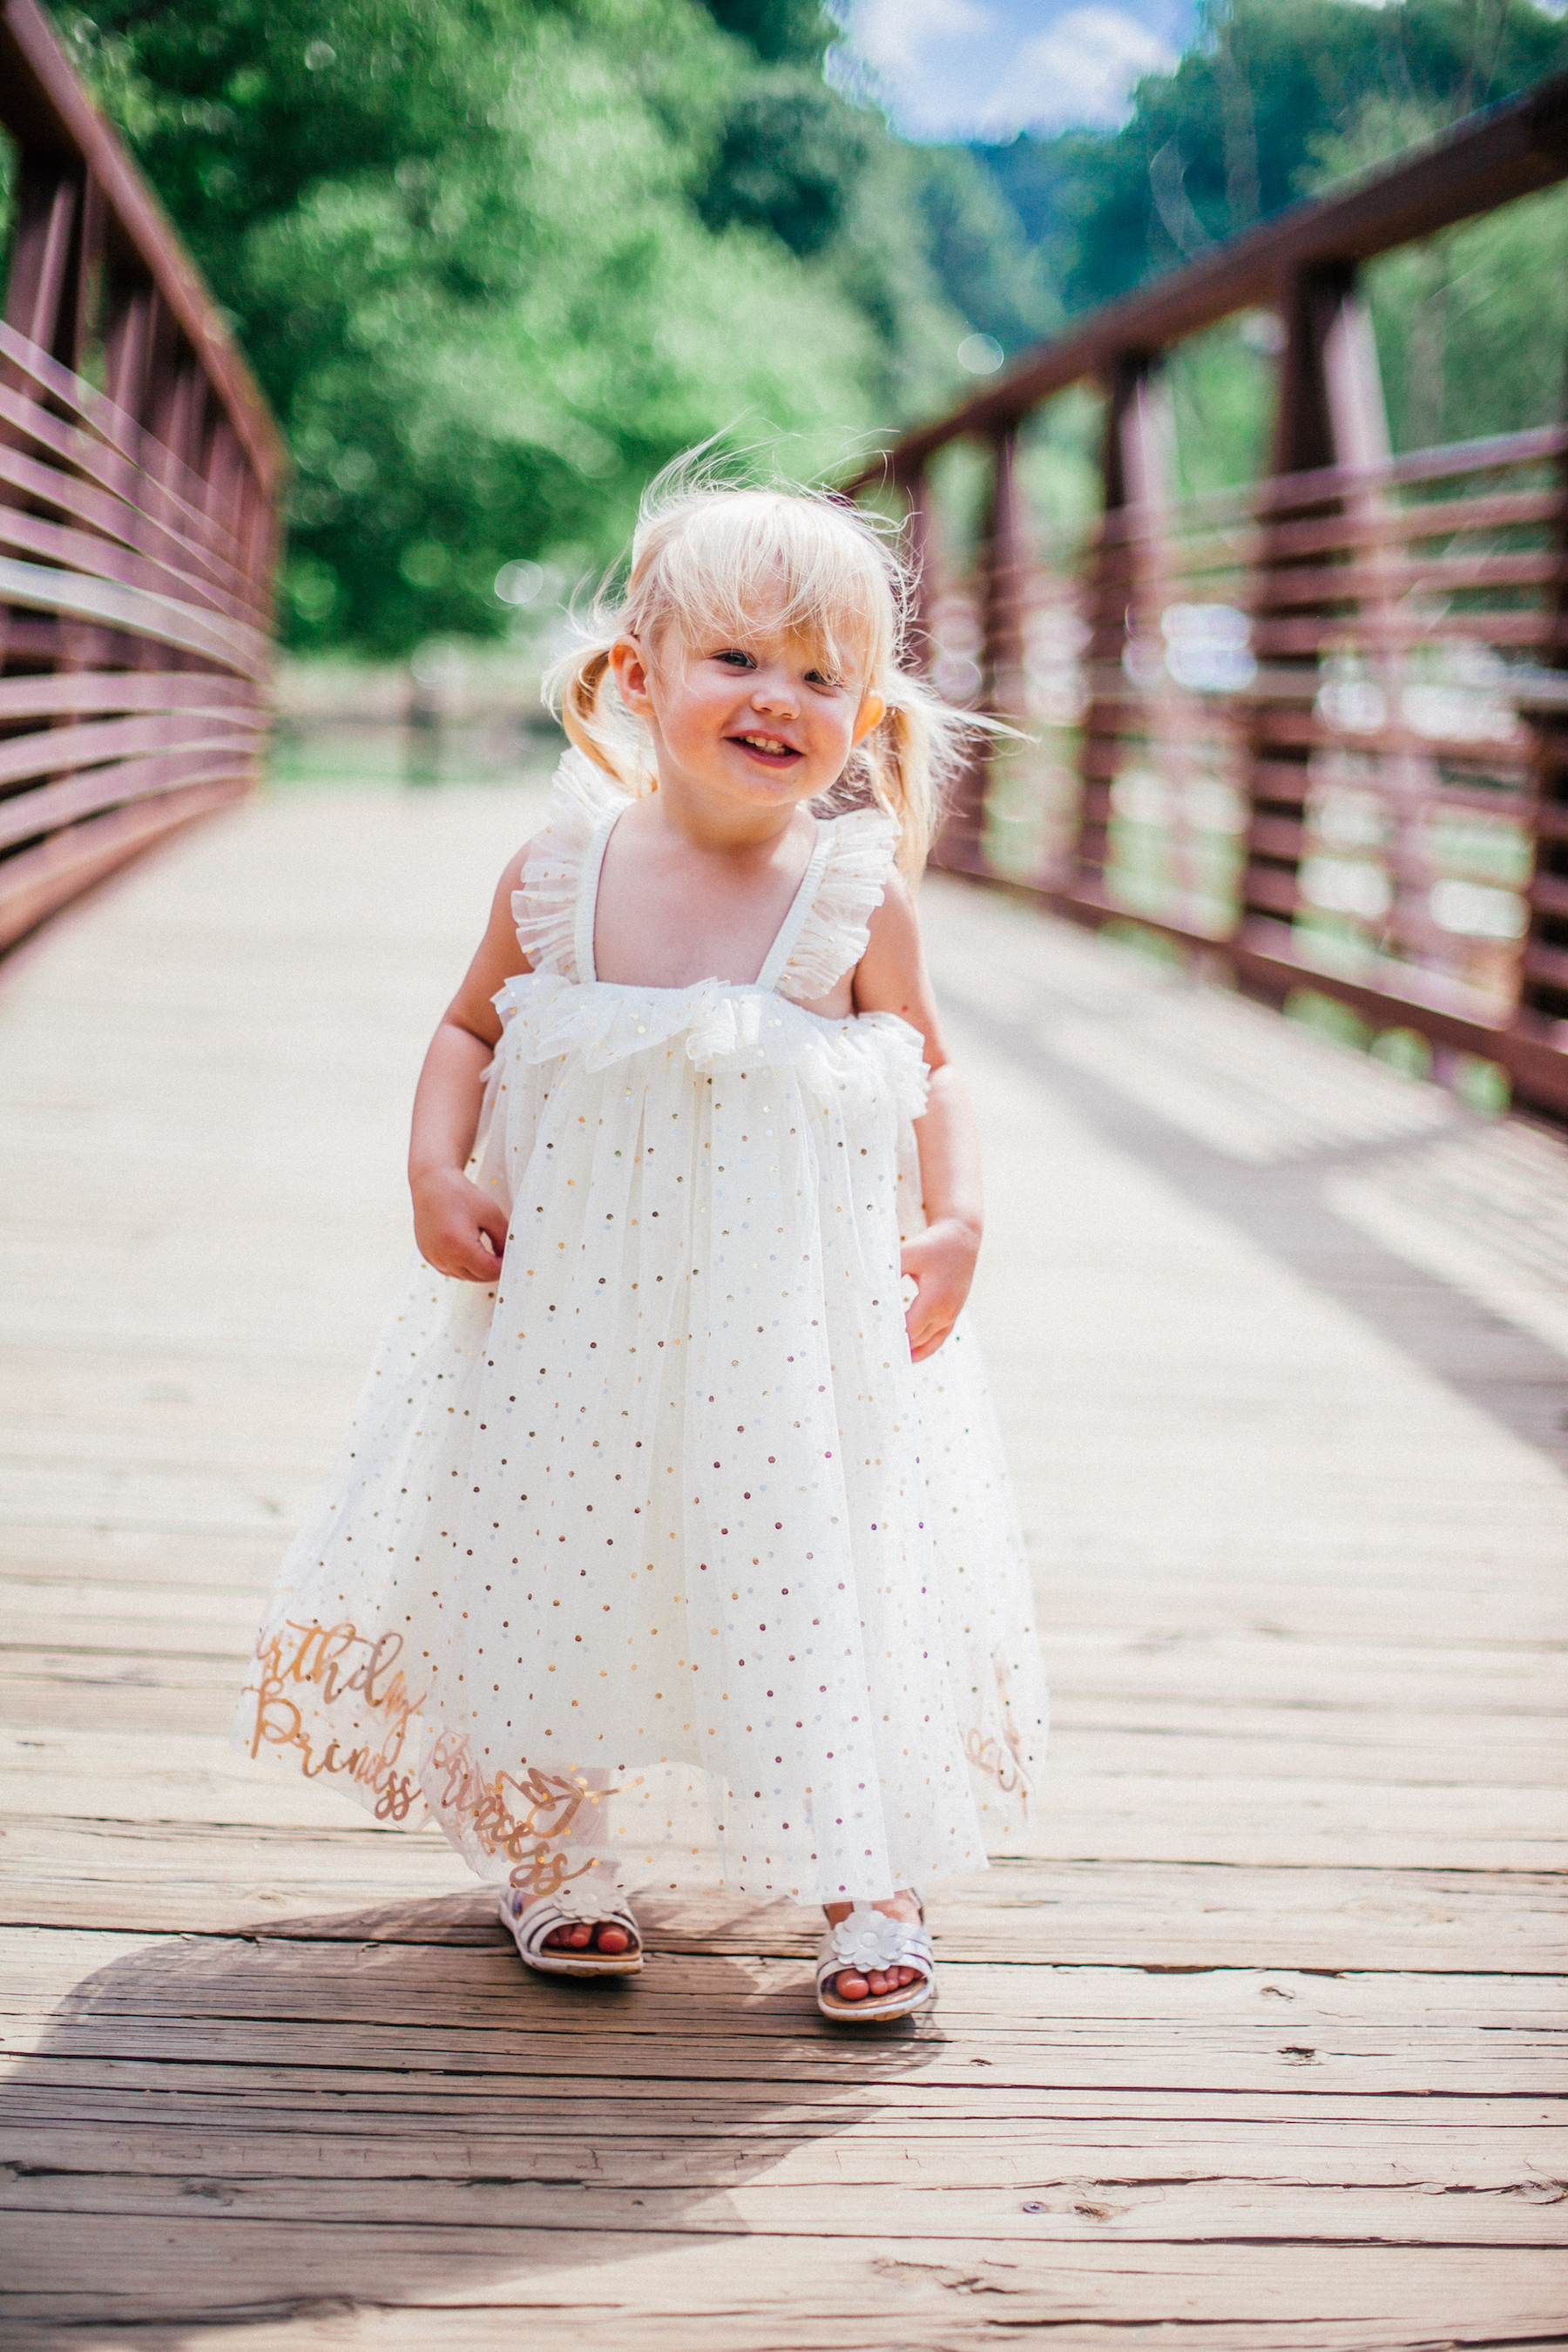 rope-mill-park-woodstock-family-photographer-angela-elliott-wingard-two-year-old-photoshoot-71.jpg